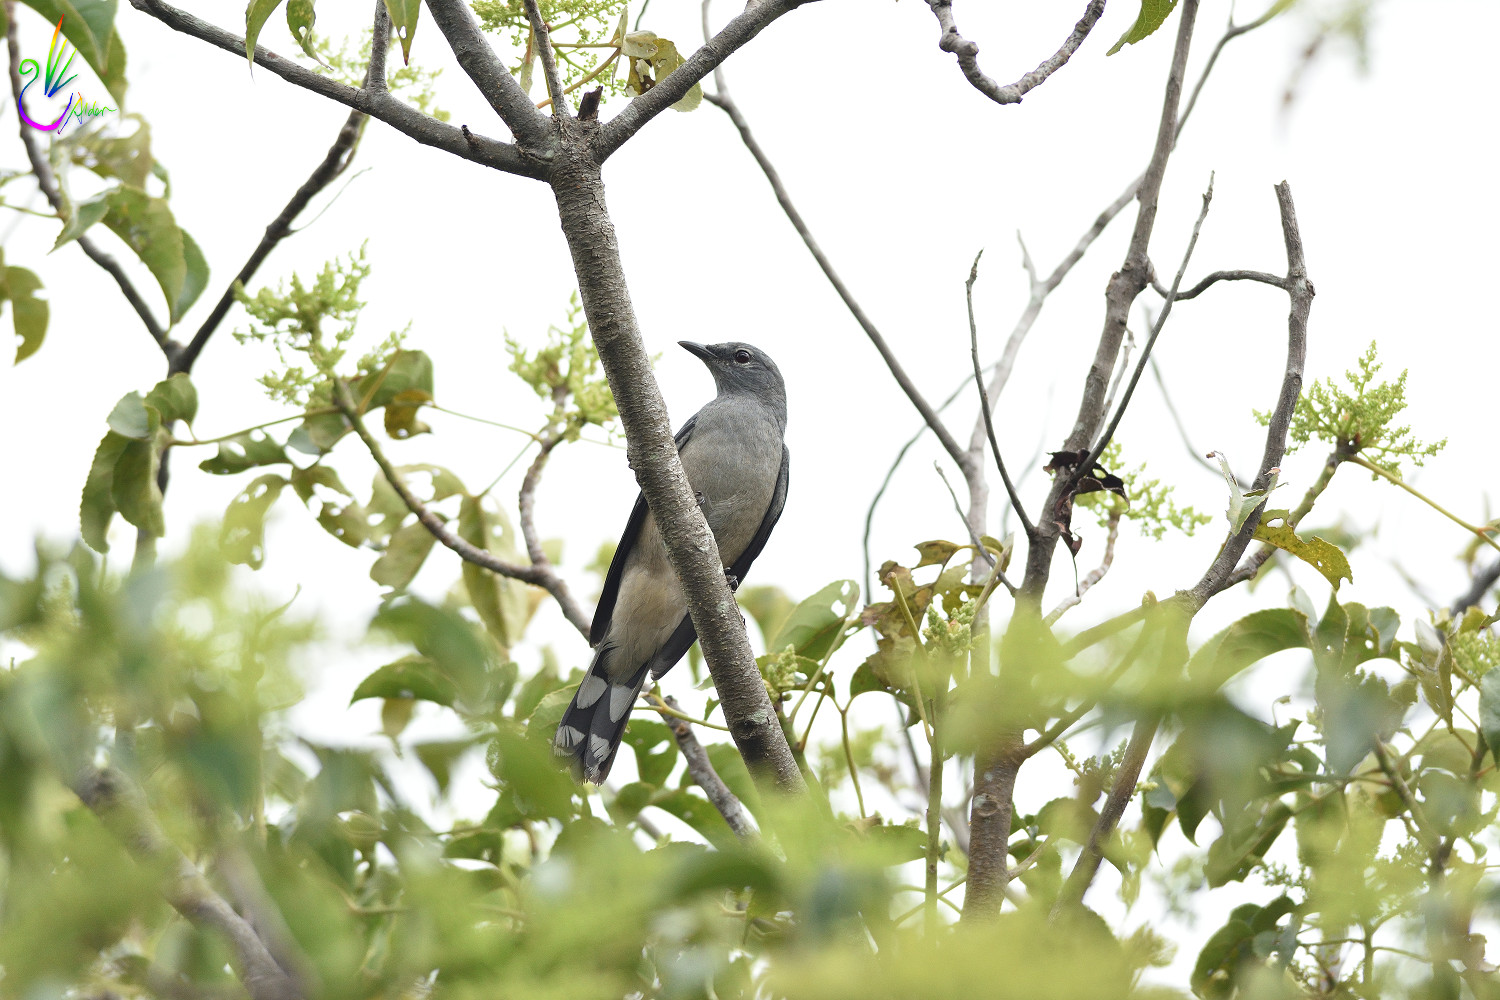 Black-winged_Cuckoo-shrike_8911